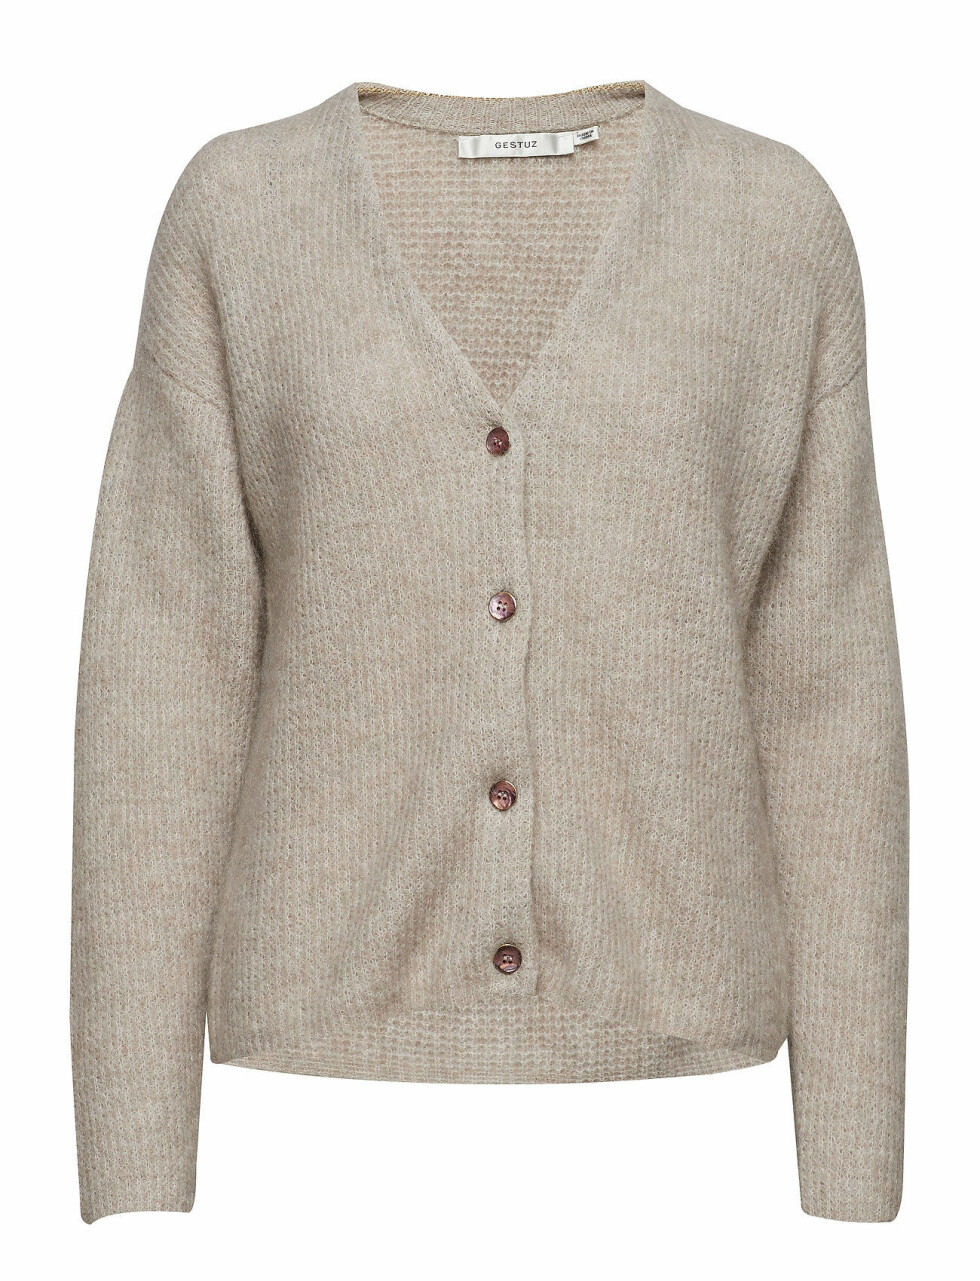 Kardigan fra Gestuz |1500,-| https://www.boozt.com/no/no/gestuz/debbie-v-neck-cardigan-ms19_18945923/18945939?path=67362&navId=67362&sNavId=67378&group=listing&position=1000000